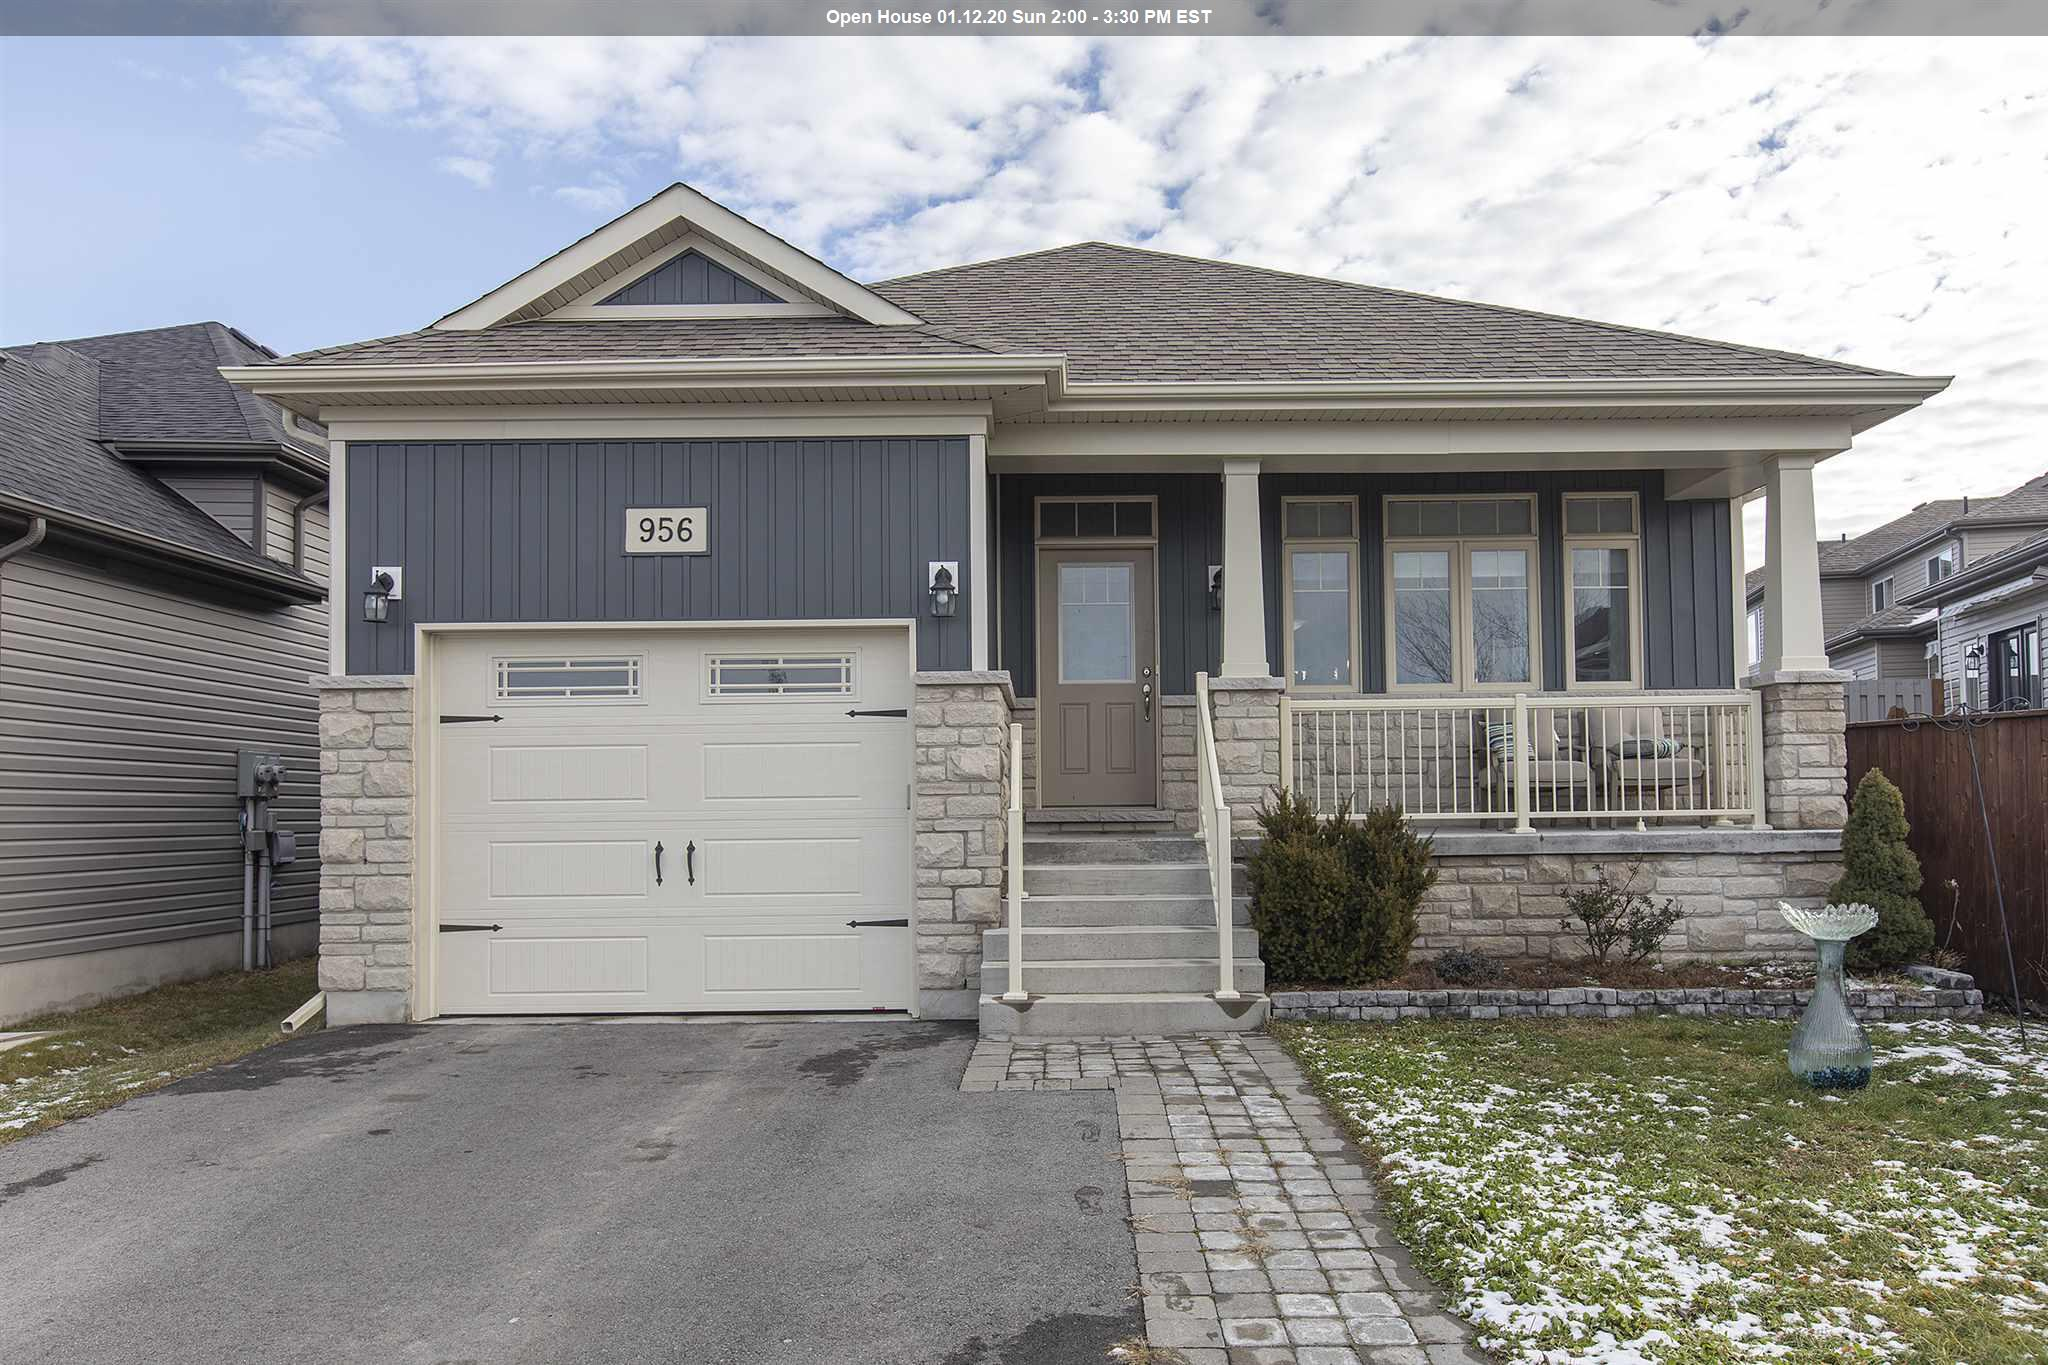 956 Blossom Street, Kingston, Ontario, Canada